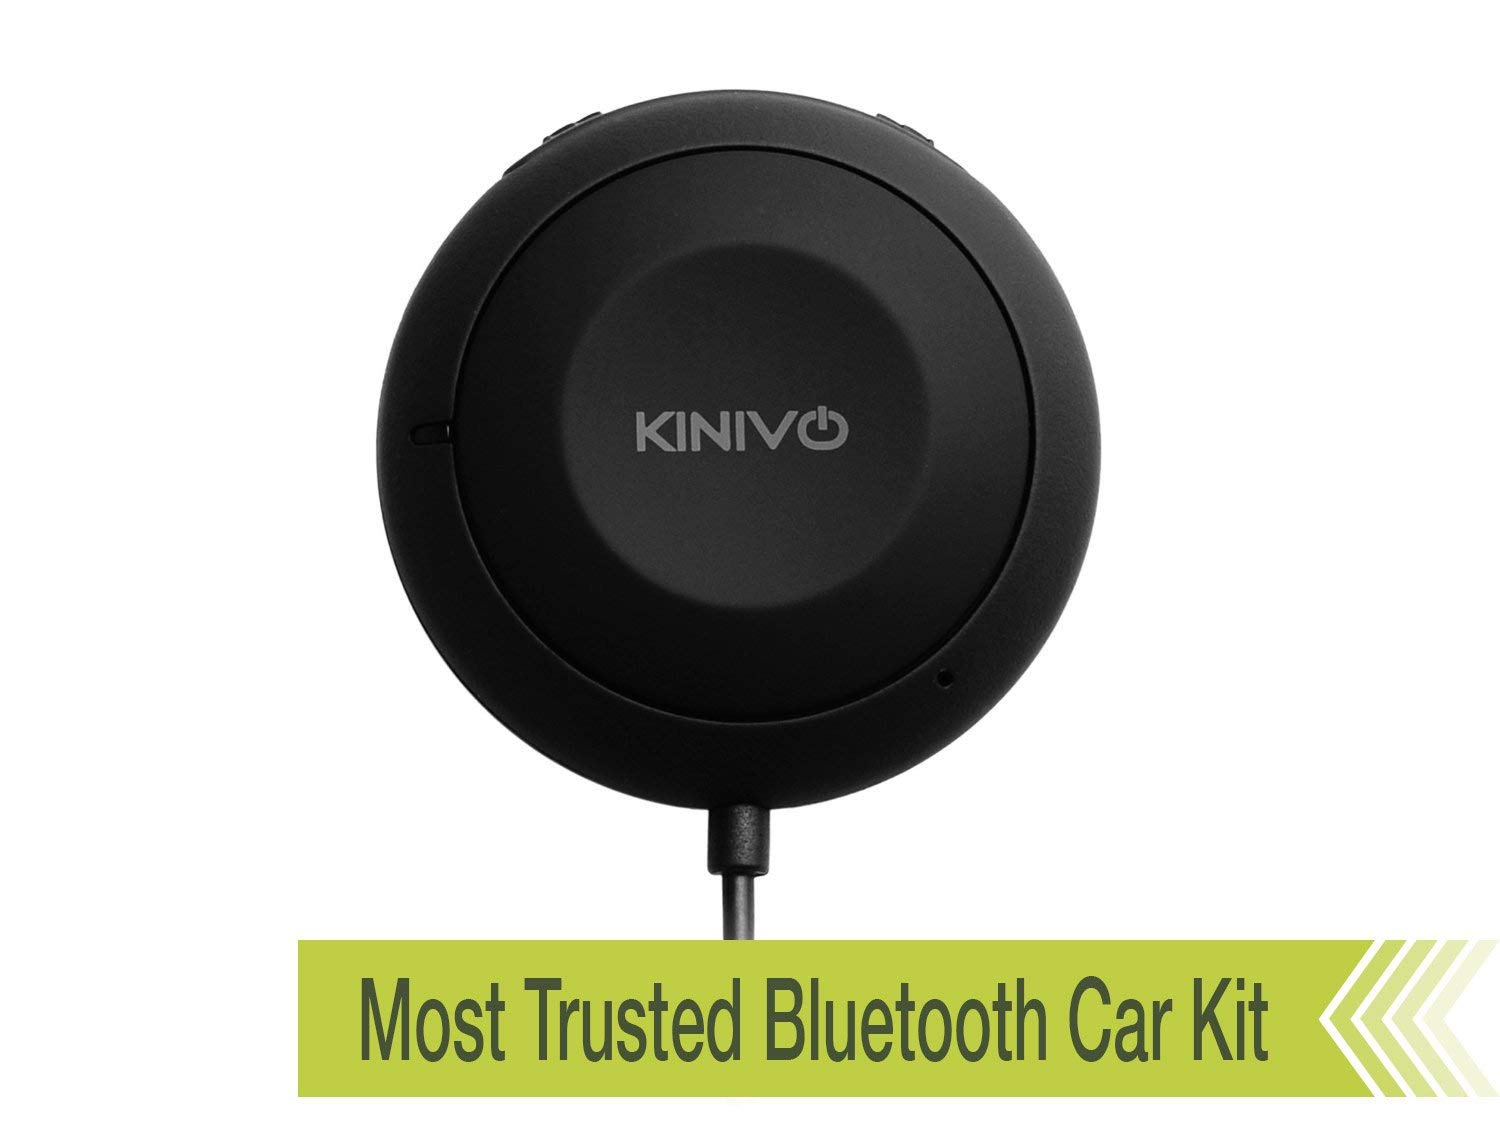 Kinivo BTC450 Bluetooth Hands-Free Car Kit for Cars with Aux Input Jack (3.5 mm) - Supports AptX (Renewed) by Kinivo